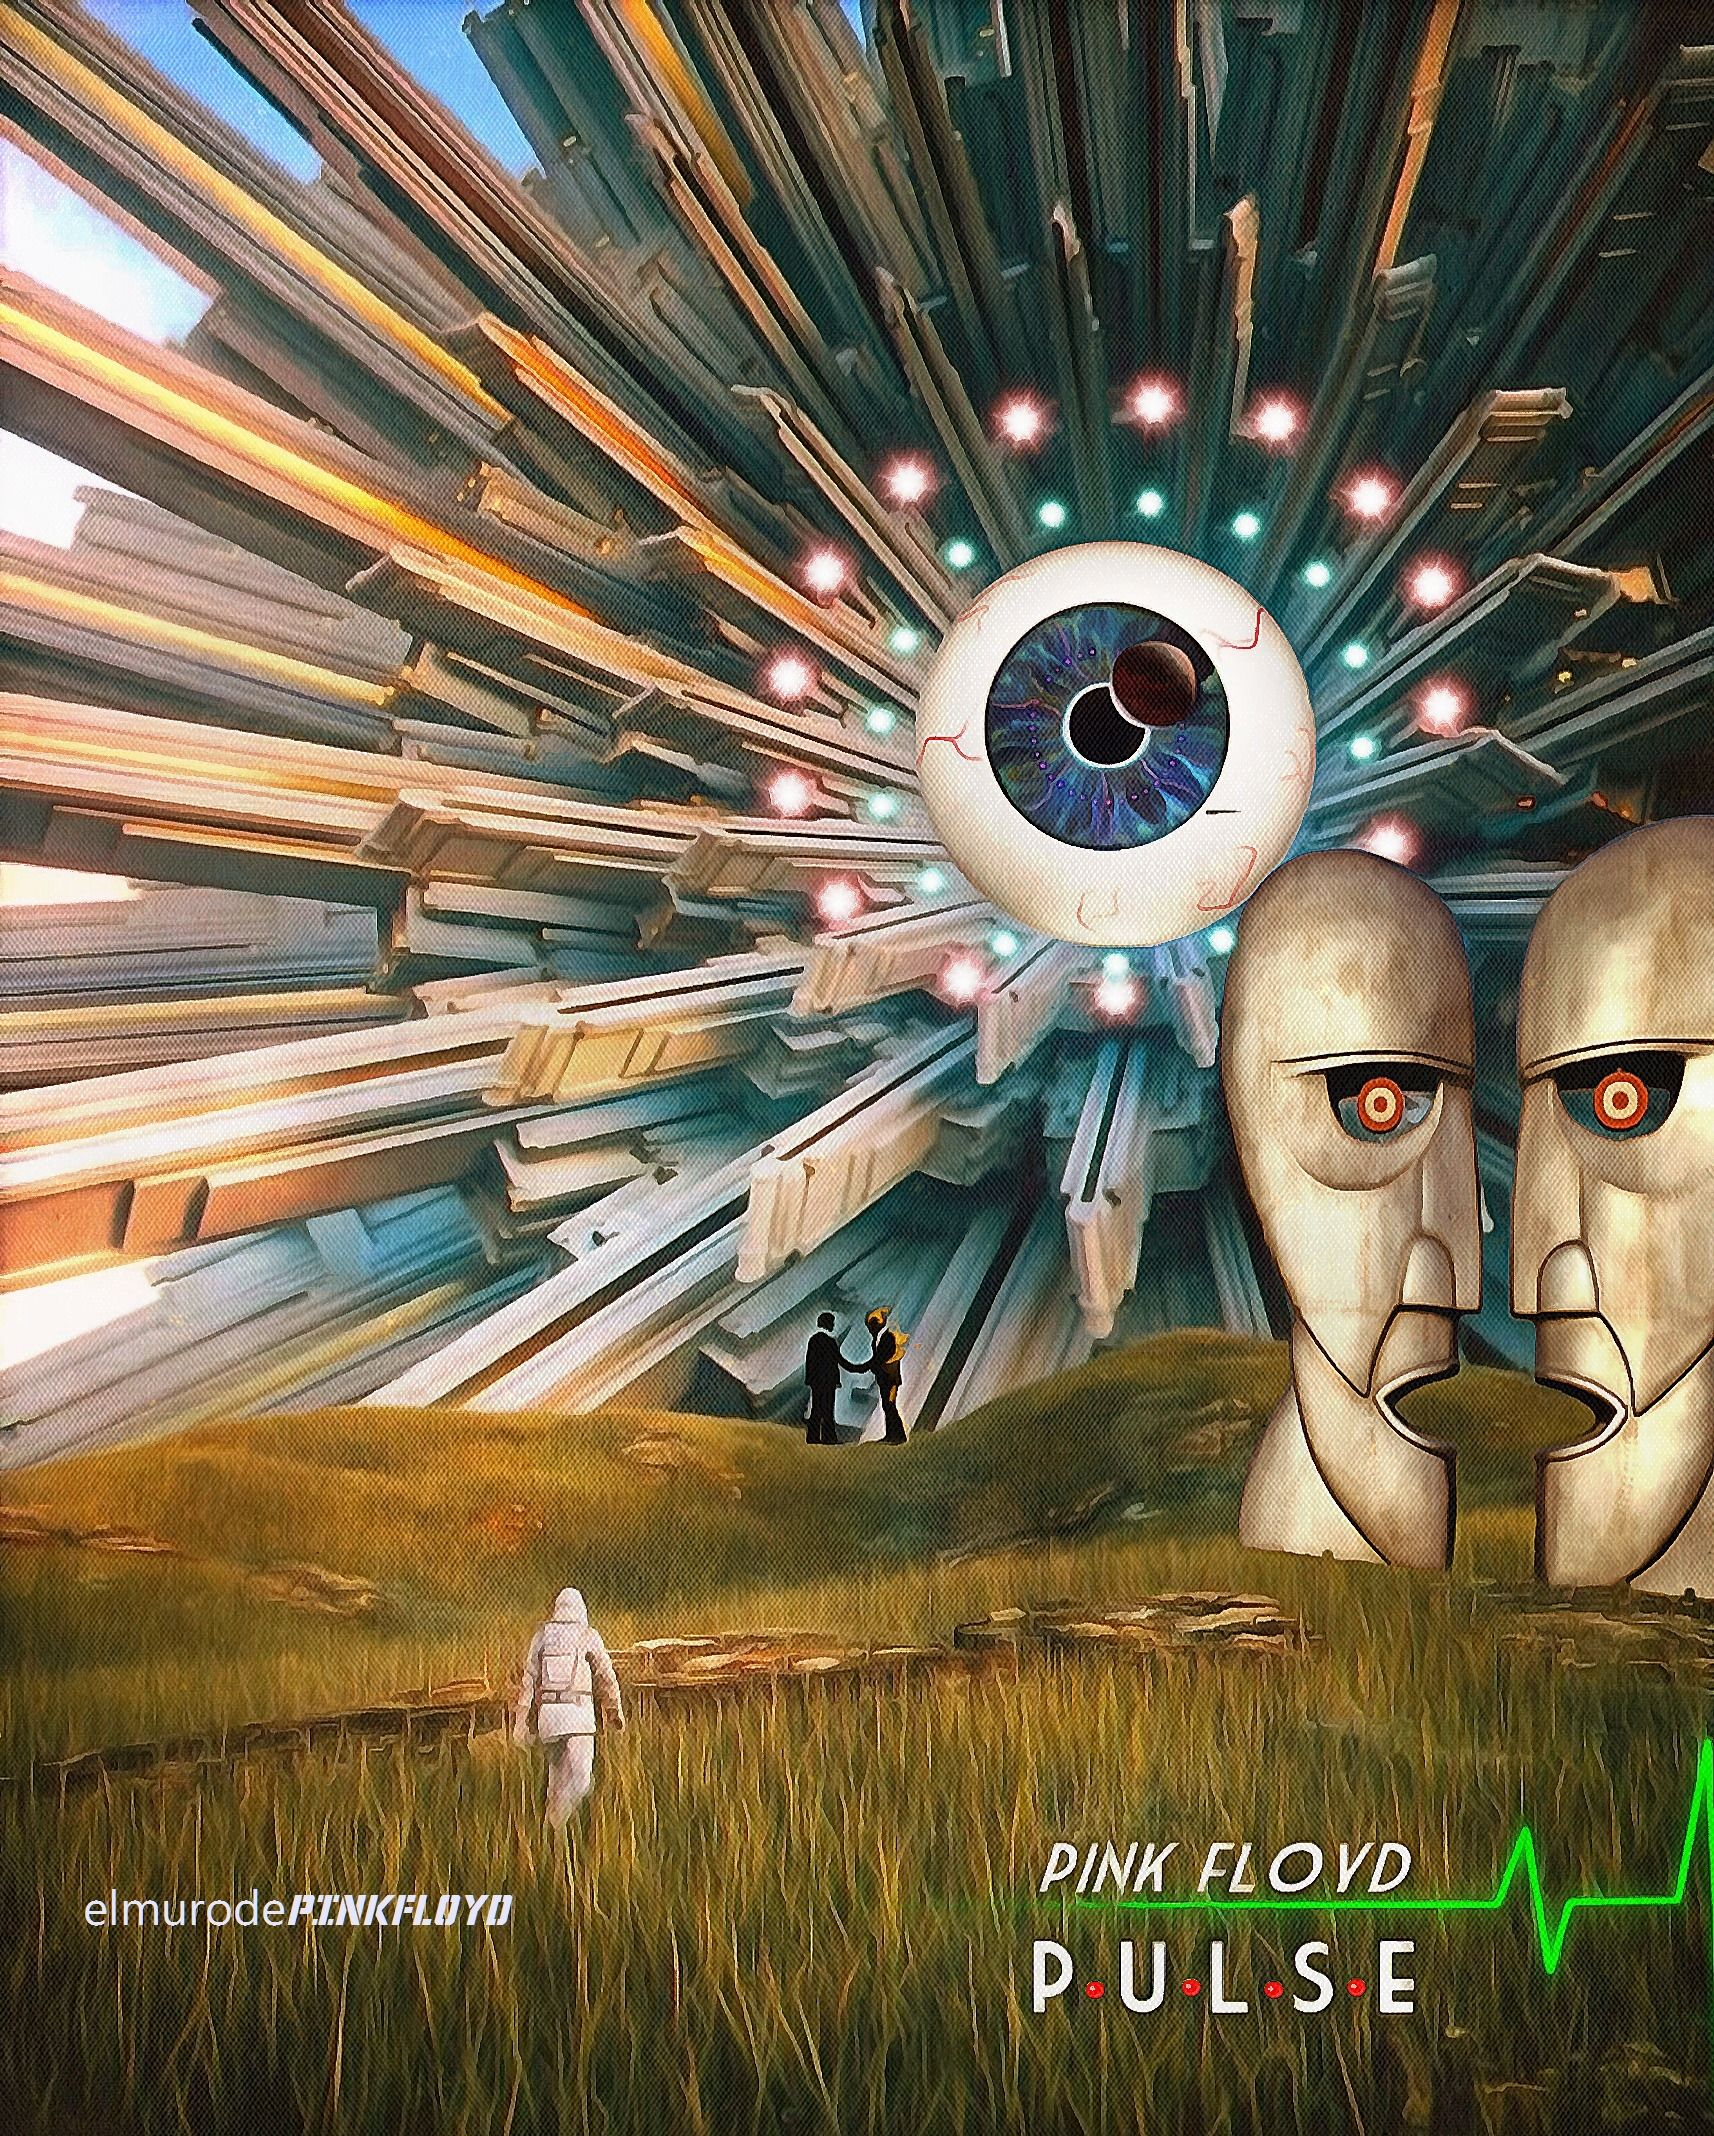 Pink Floyd Pulse With Images Pink Floyd Art Pink Floyd